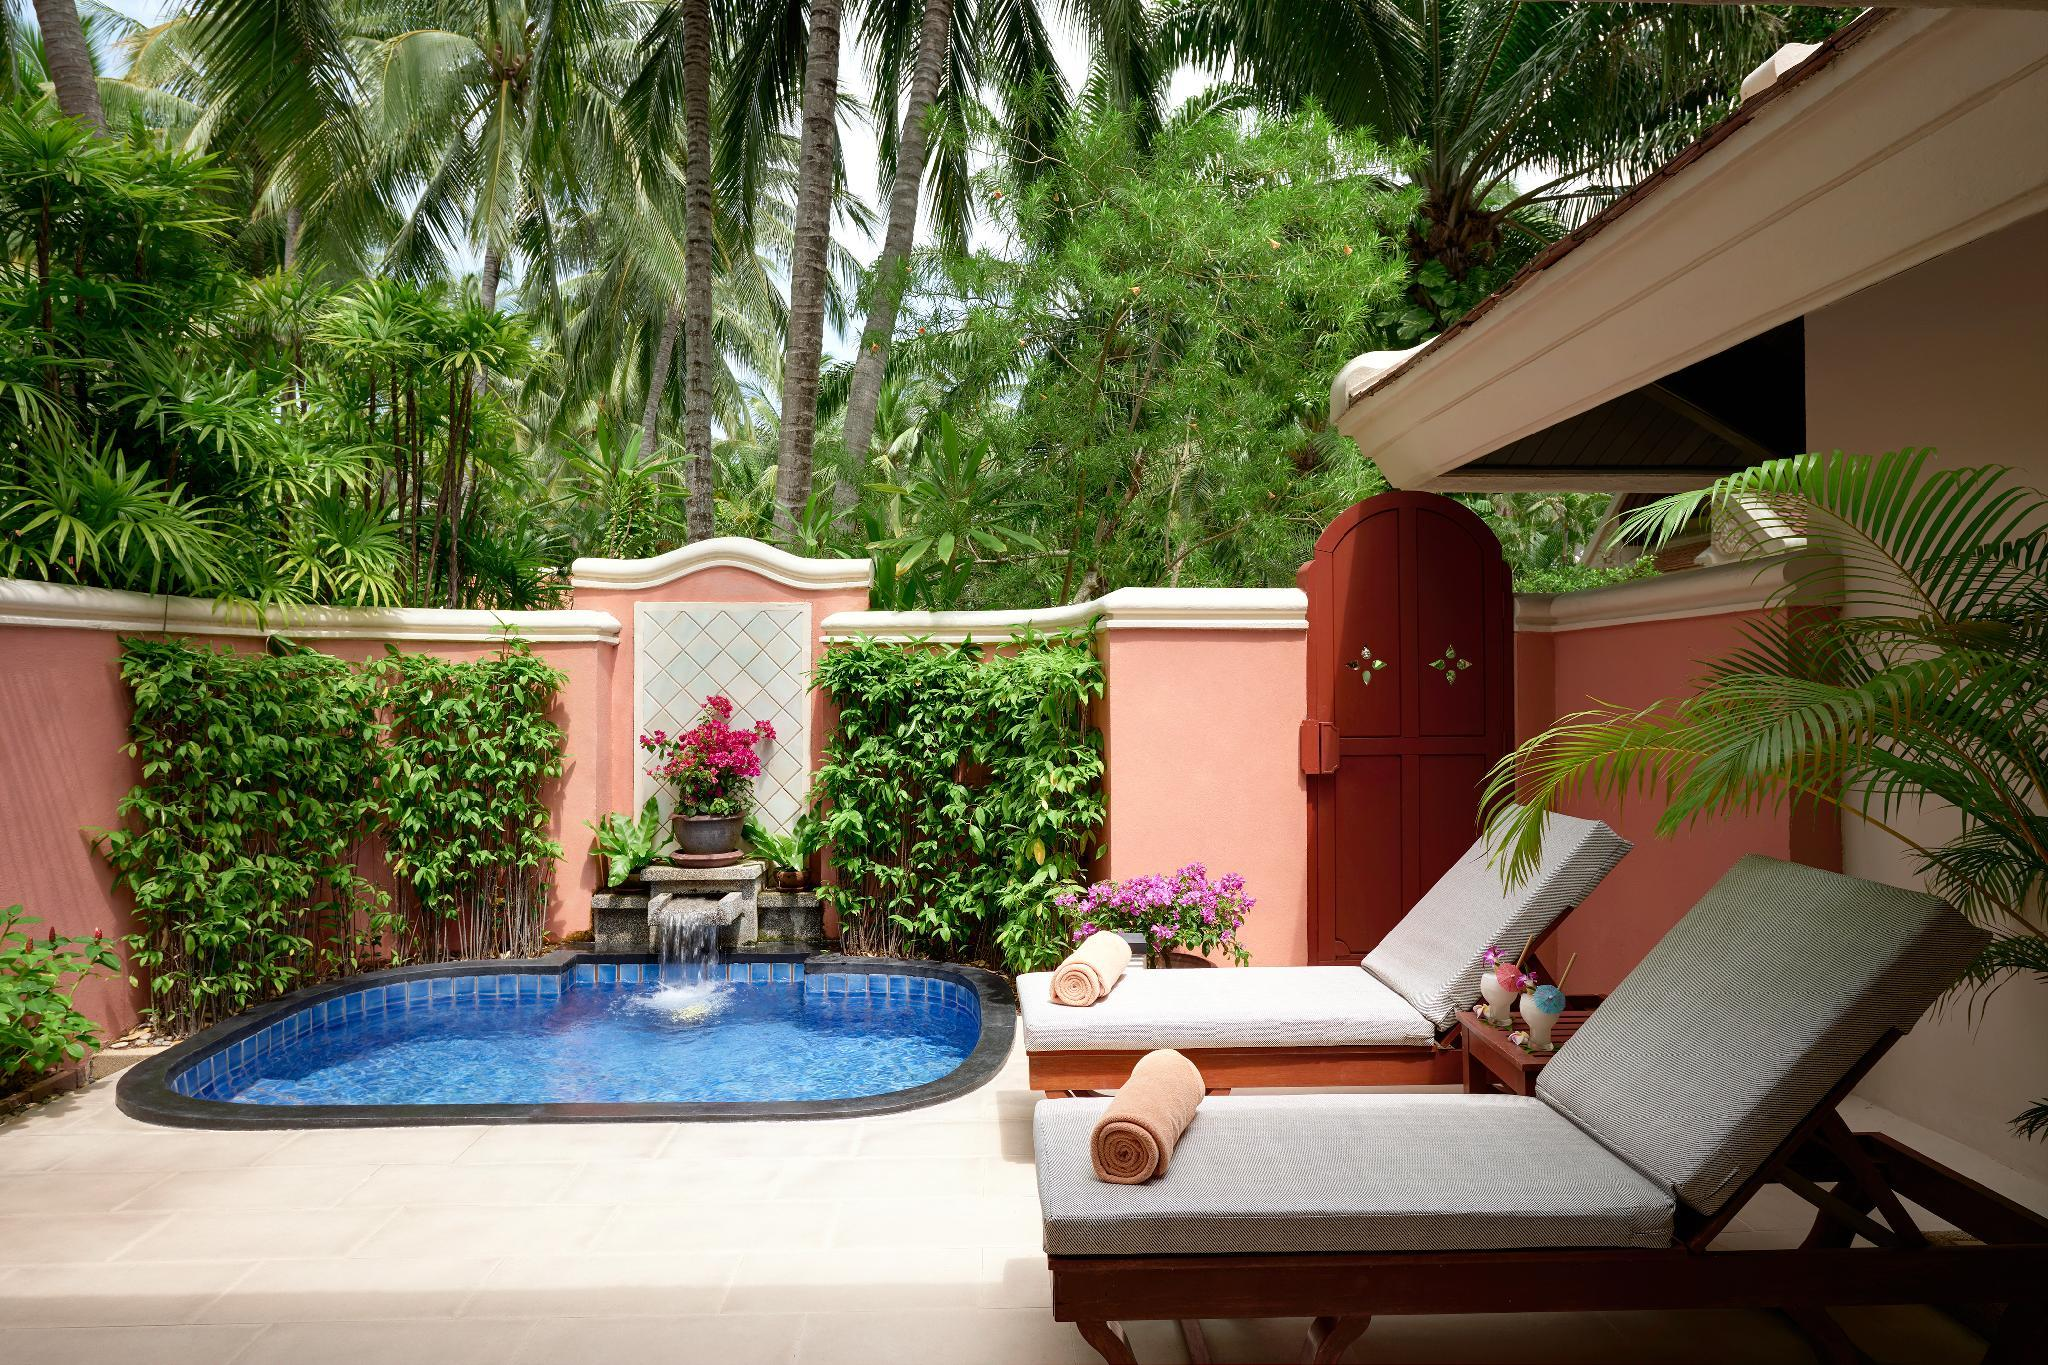 Villa Grand Deluxe med avsvalkningspool (Grand Deluxe Villa with Plunge Pool)